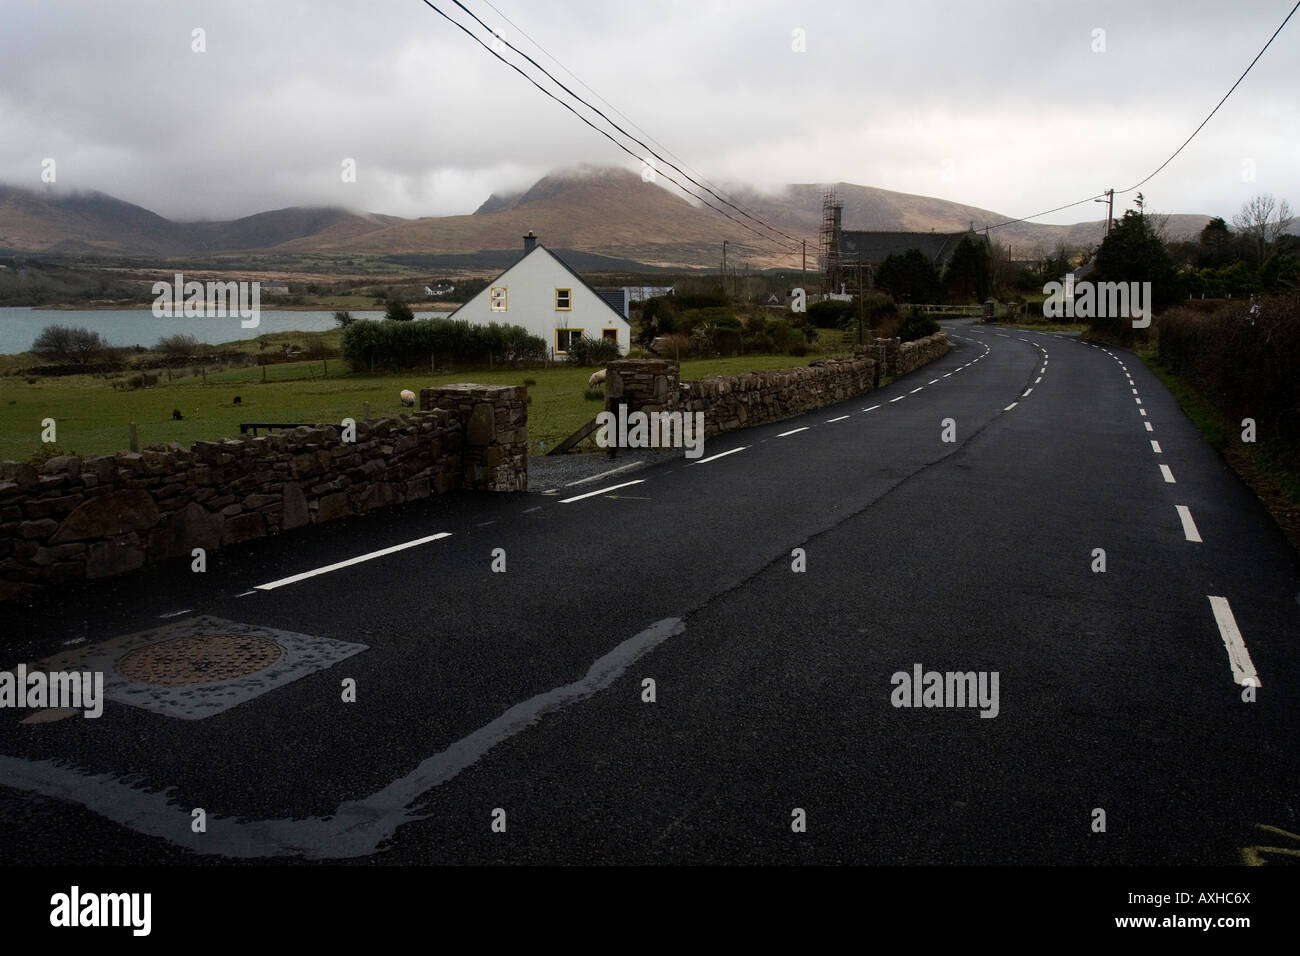 The village of Cloghane (An Clochán) on the Dingle Peninsular, western Ireland. - Stock Image